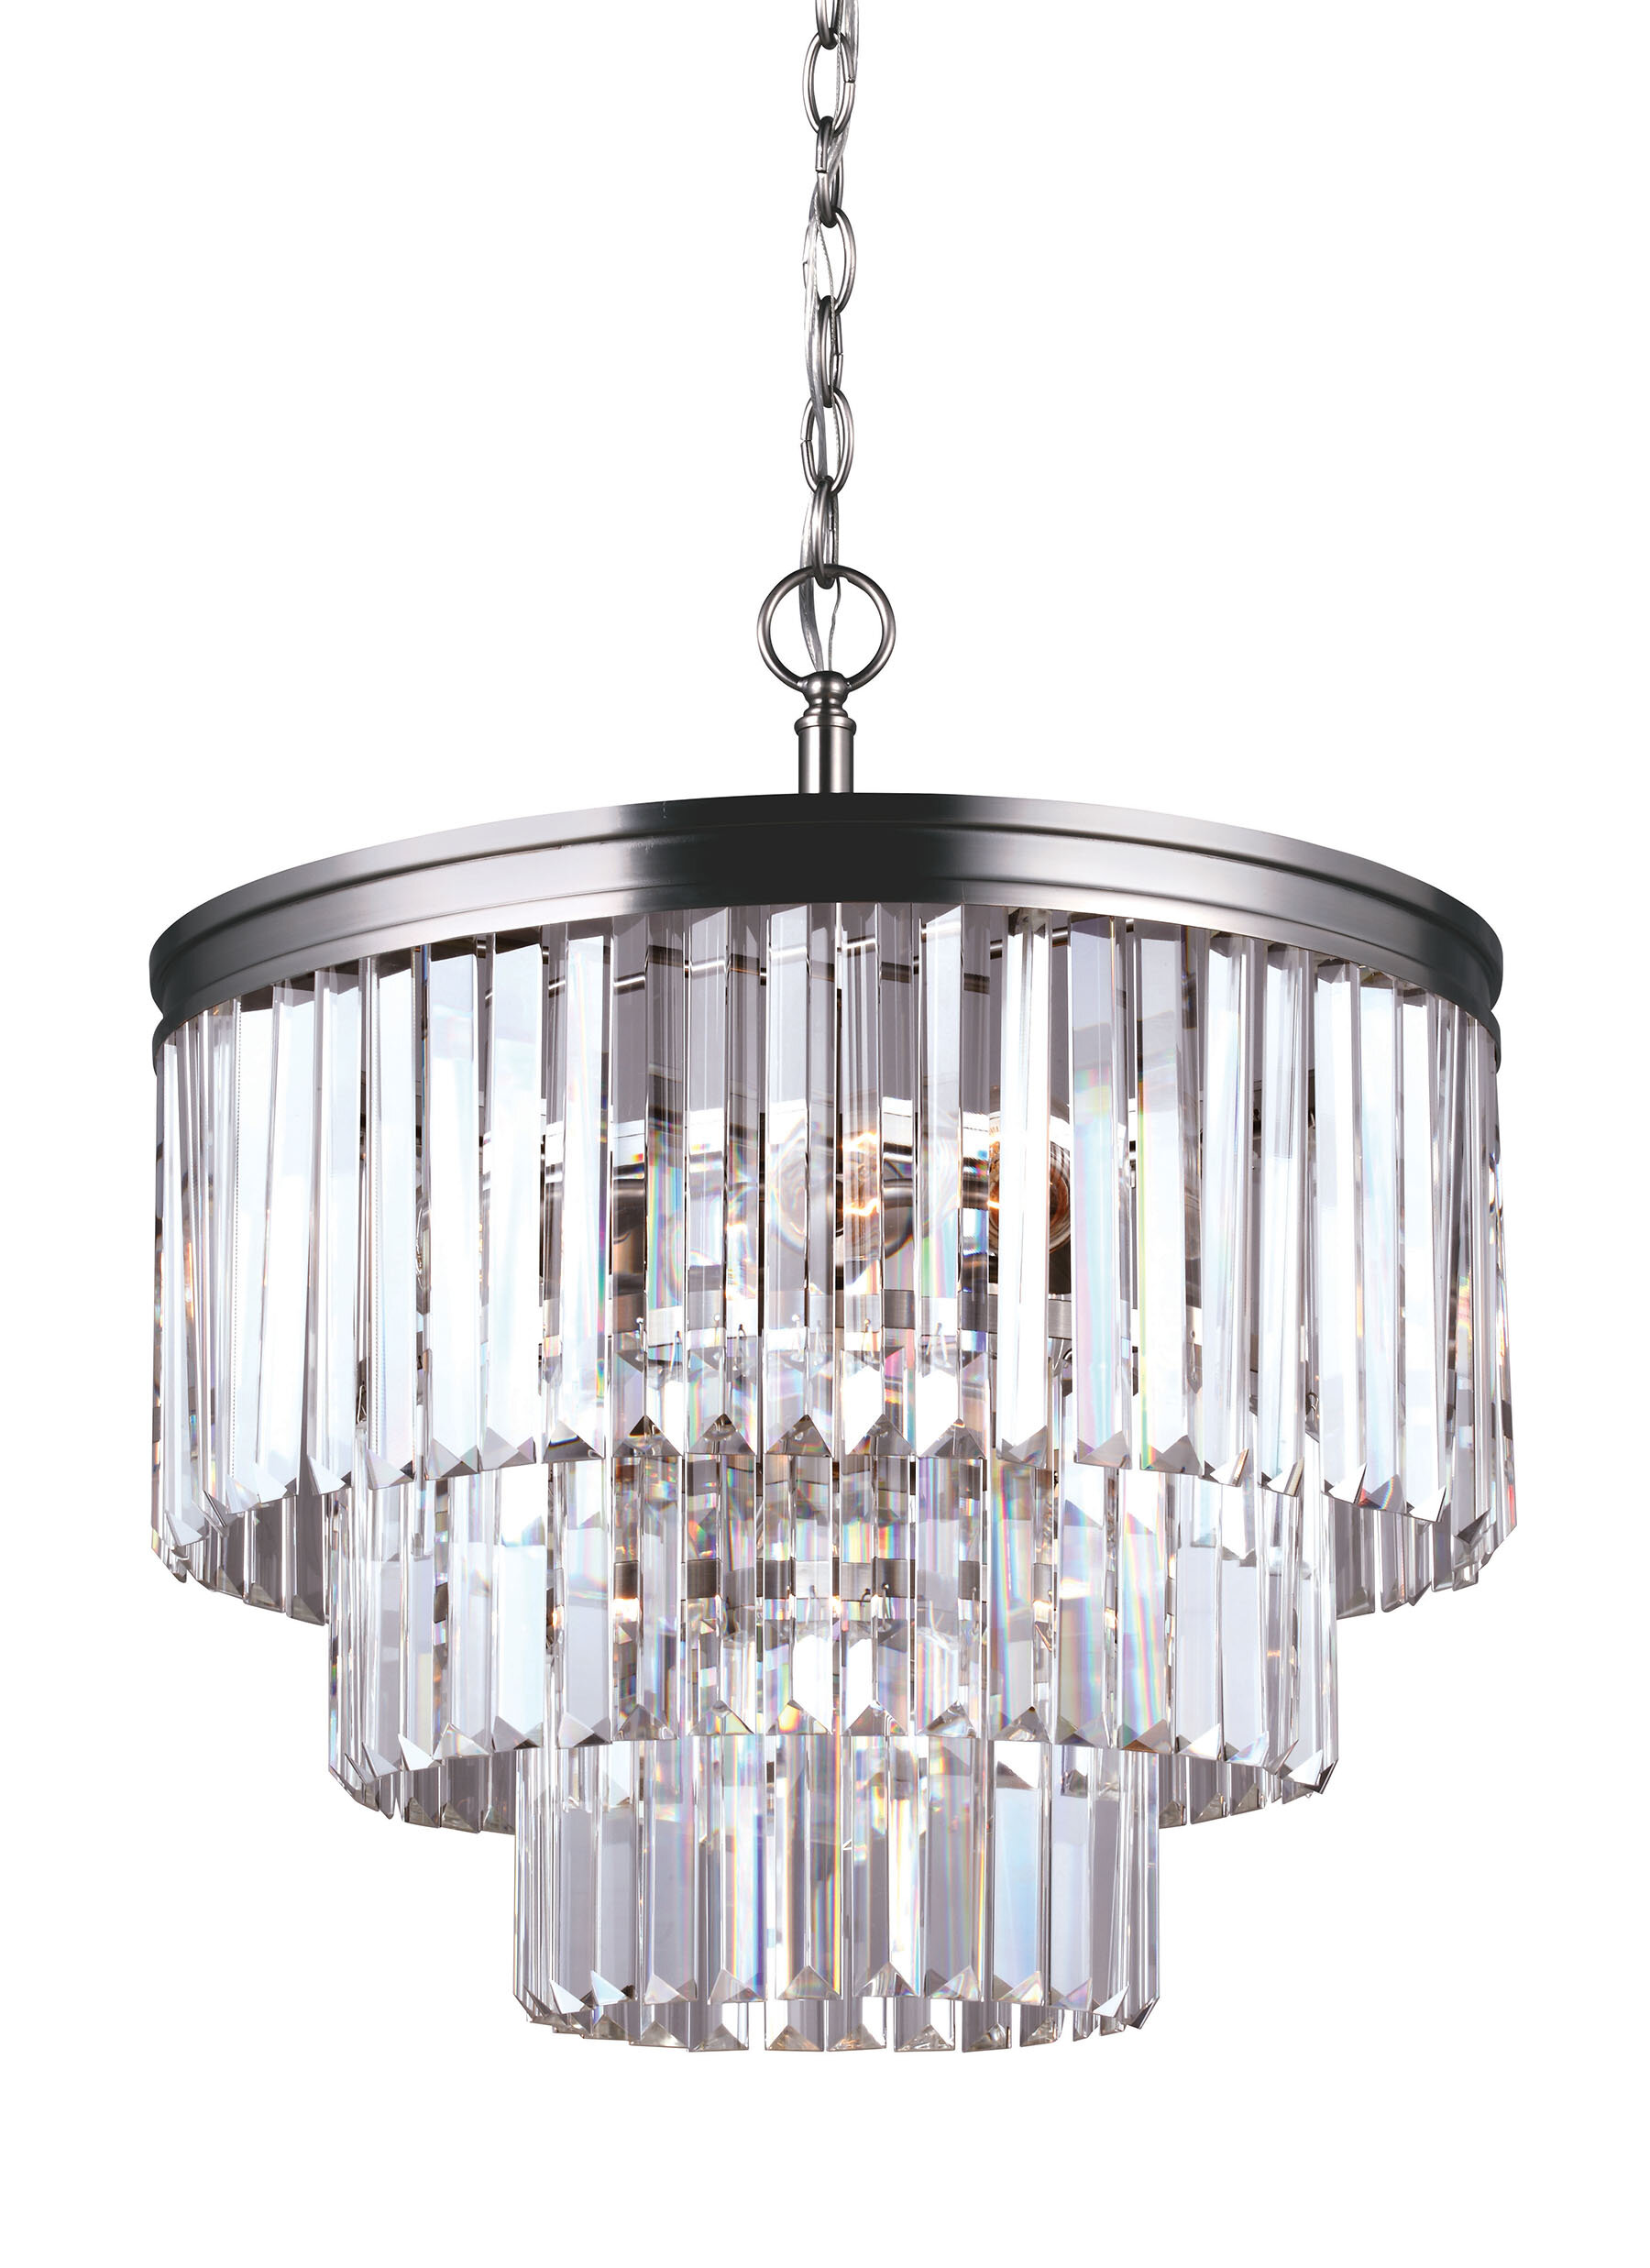 Modern & Contemporary Raindrop Crystal Chandelier